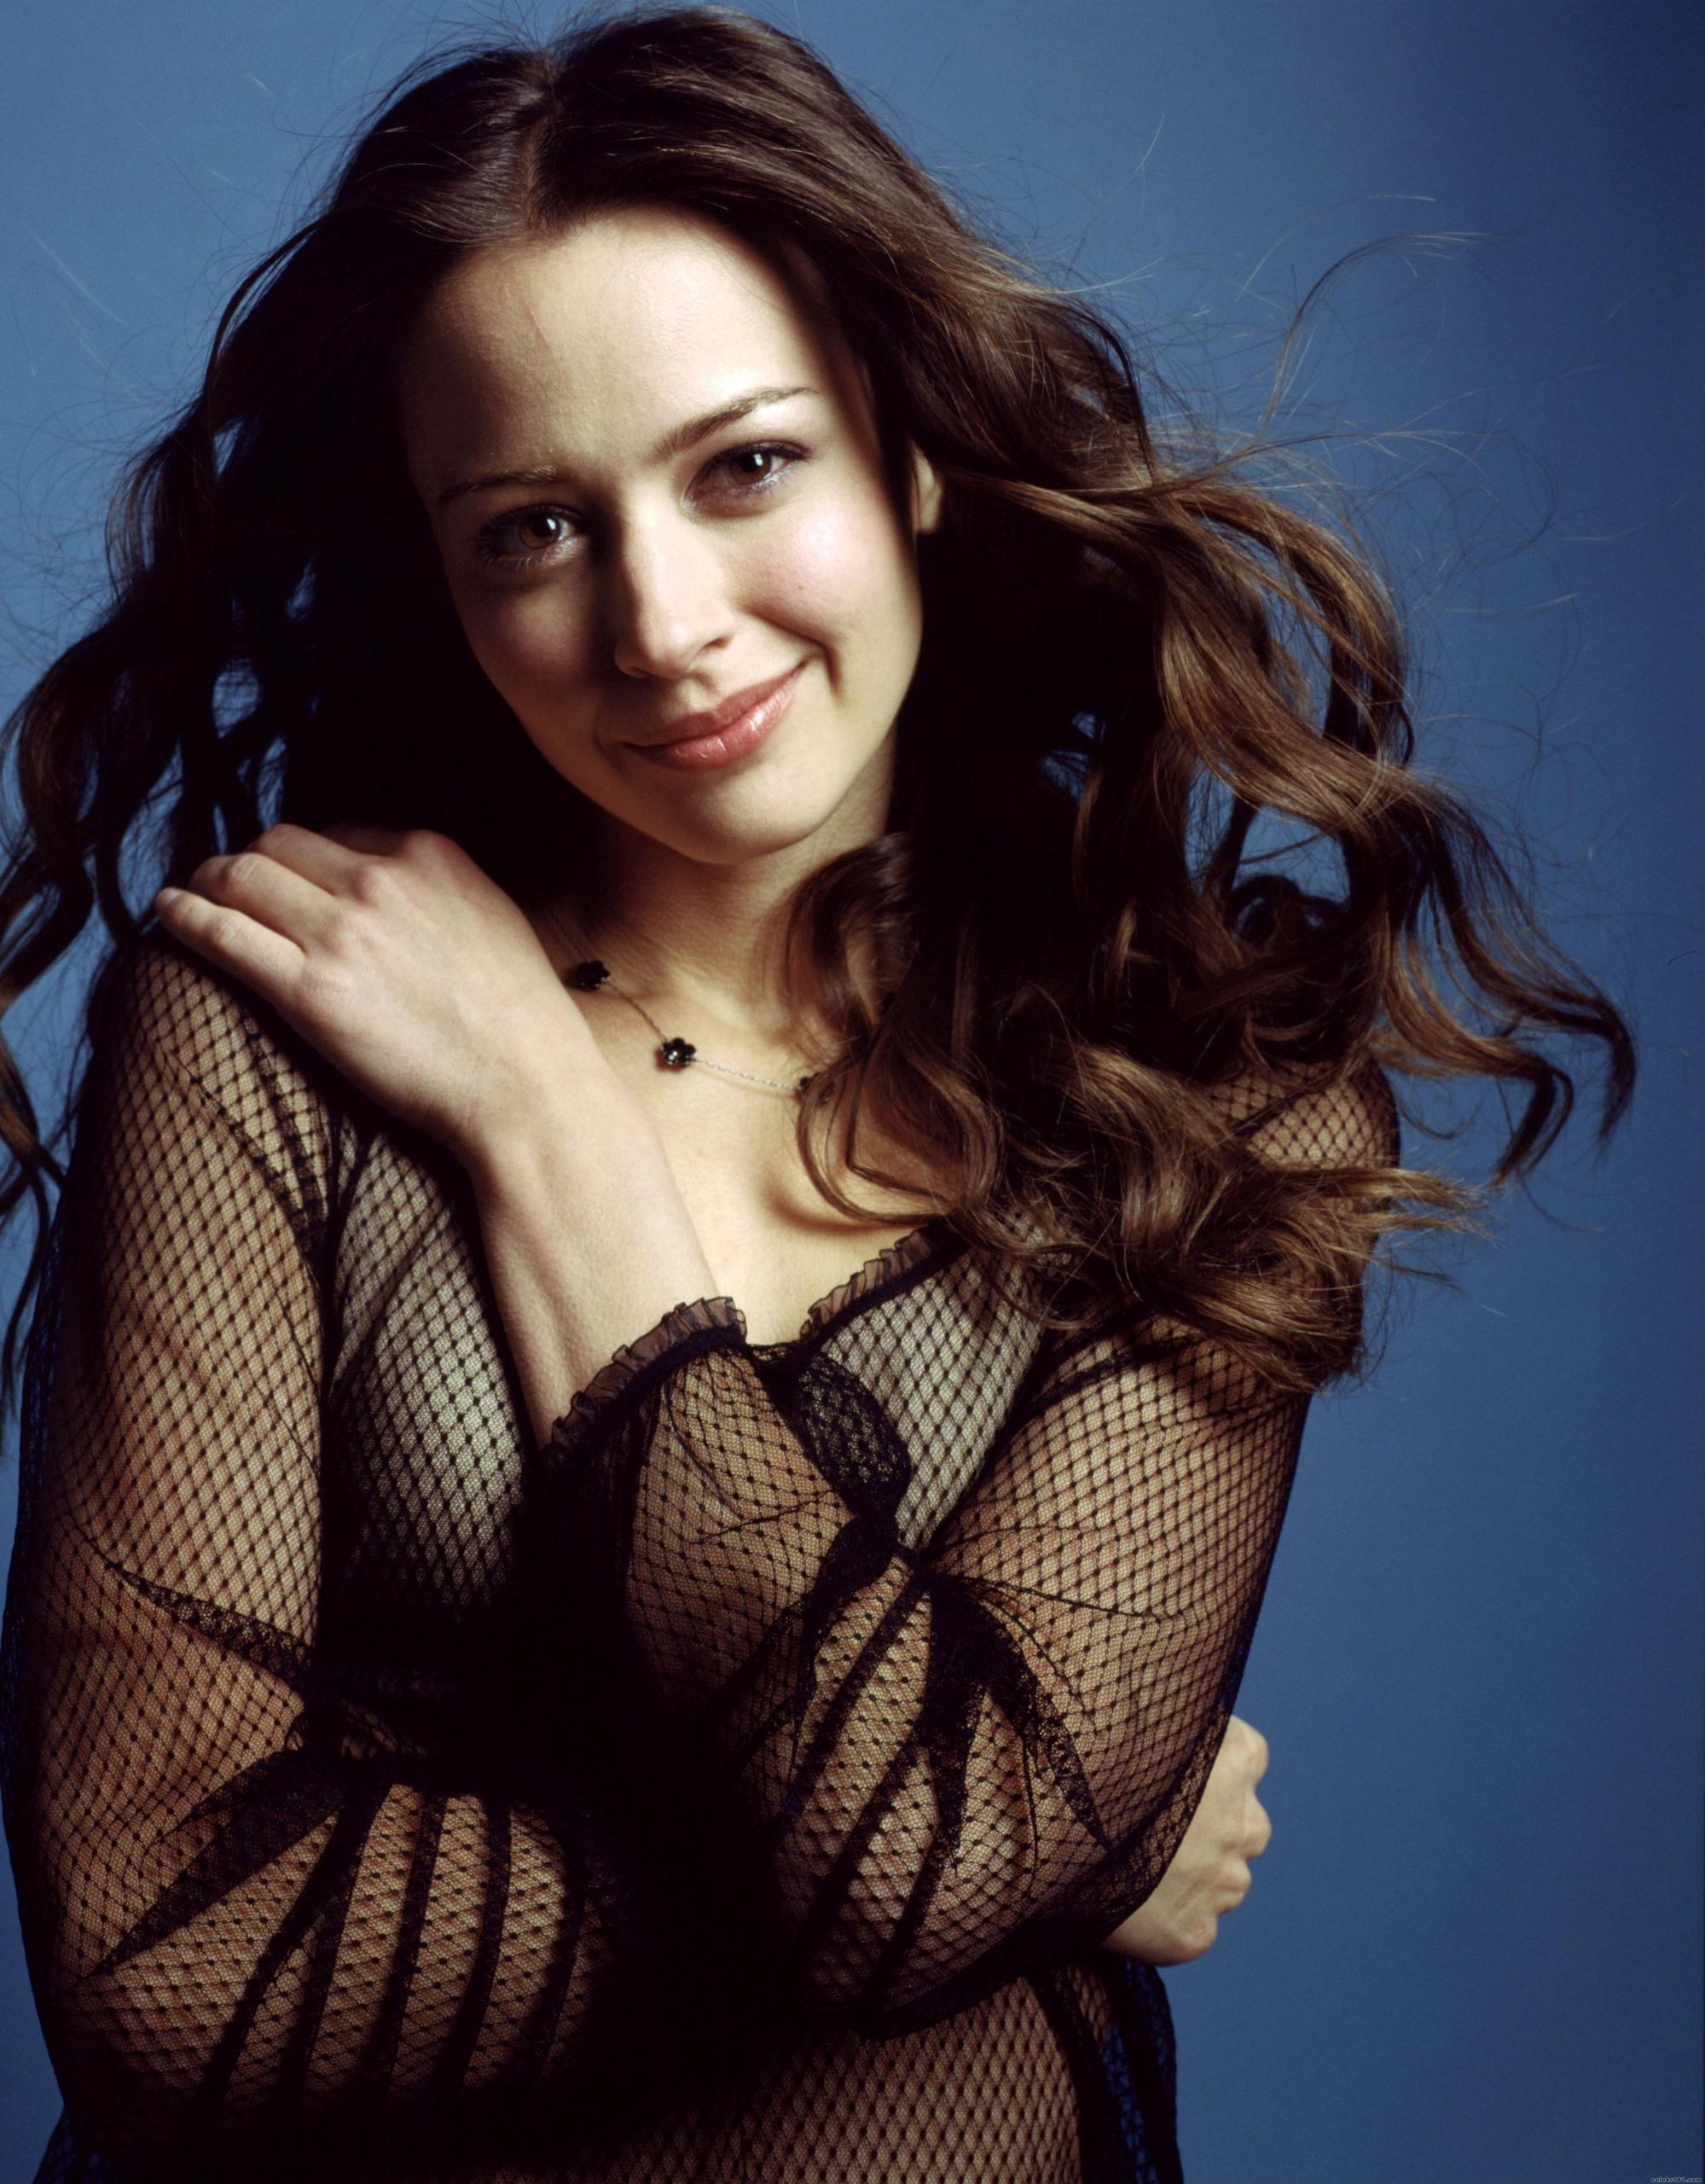 1999x2560 - Amy Acker Wallpapers 33